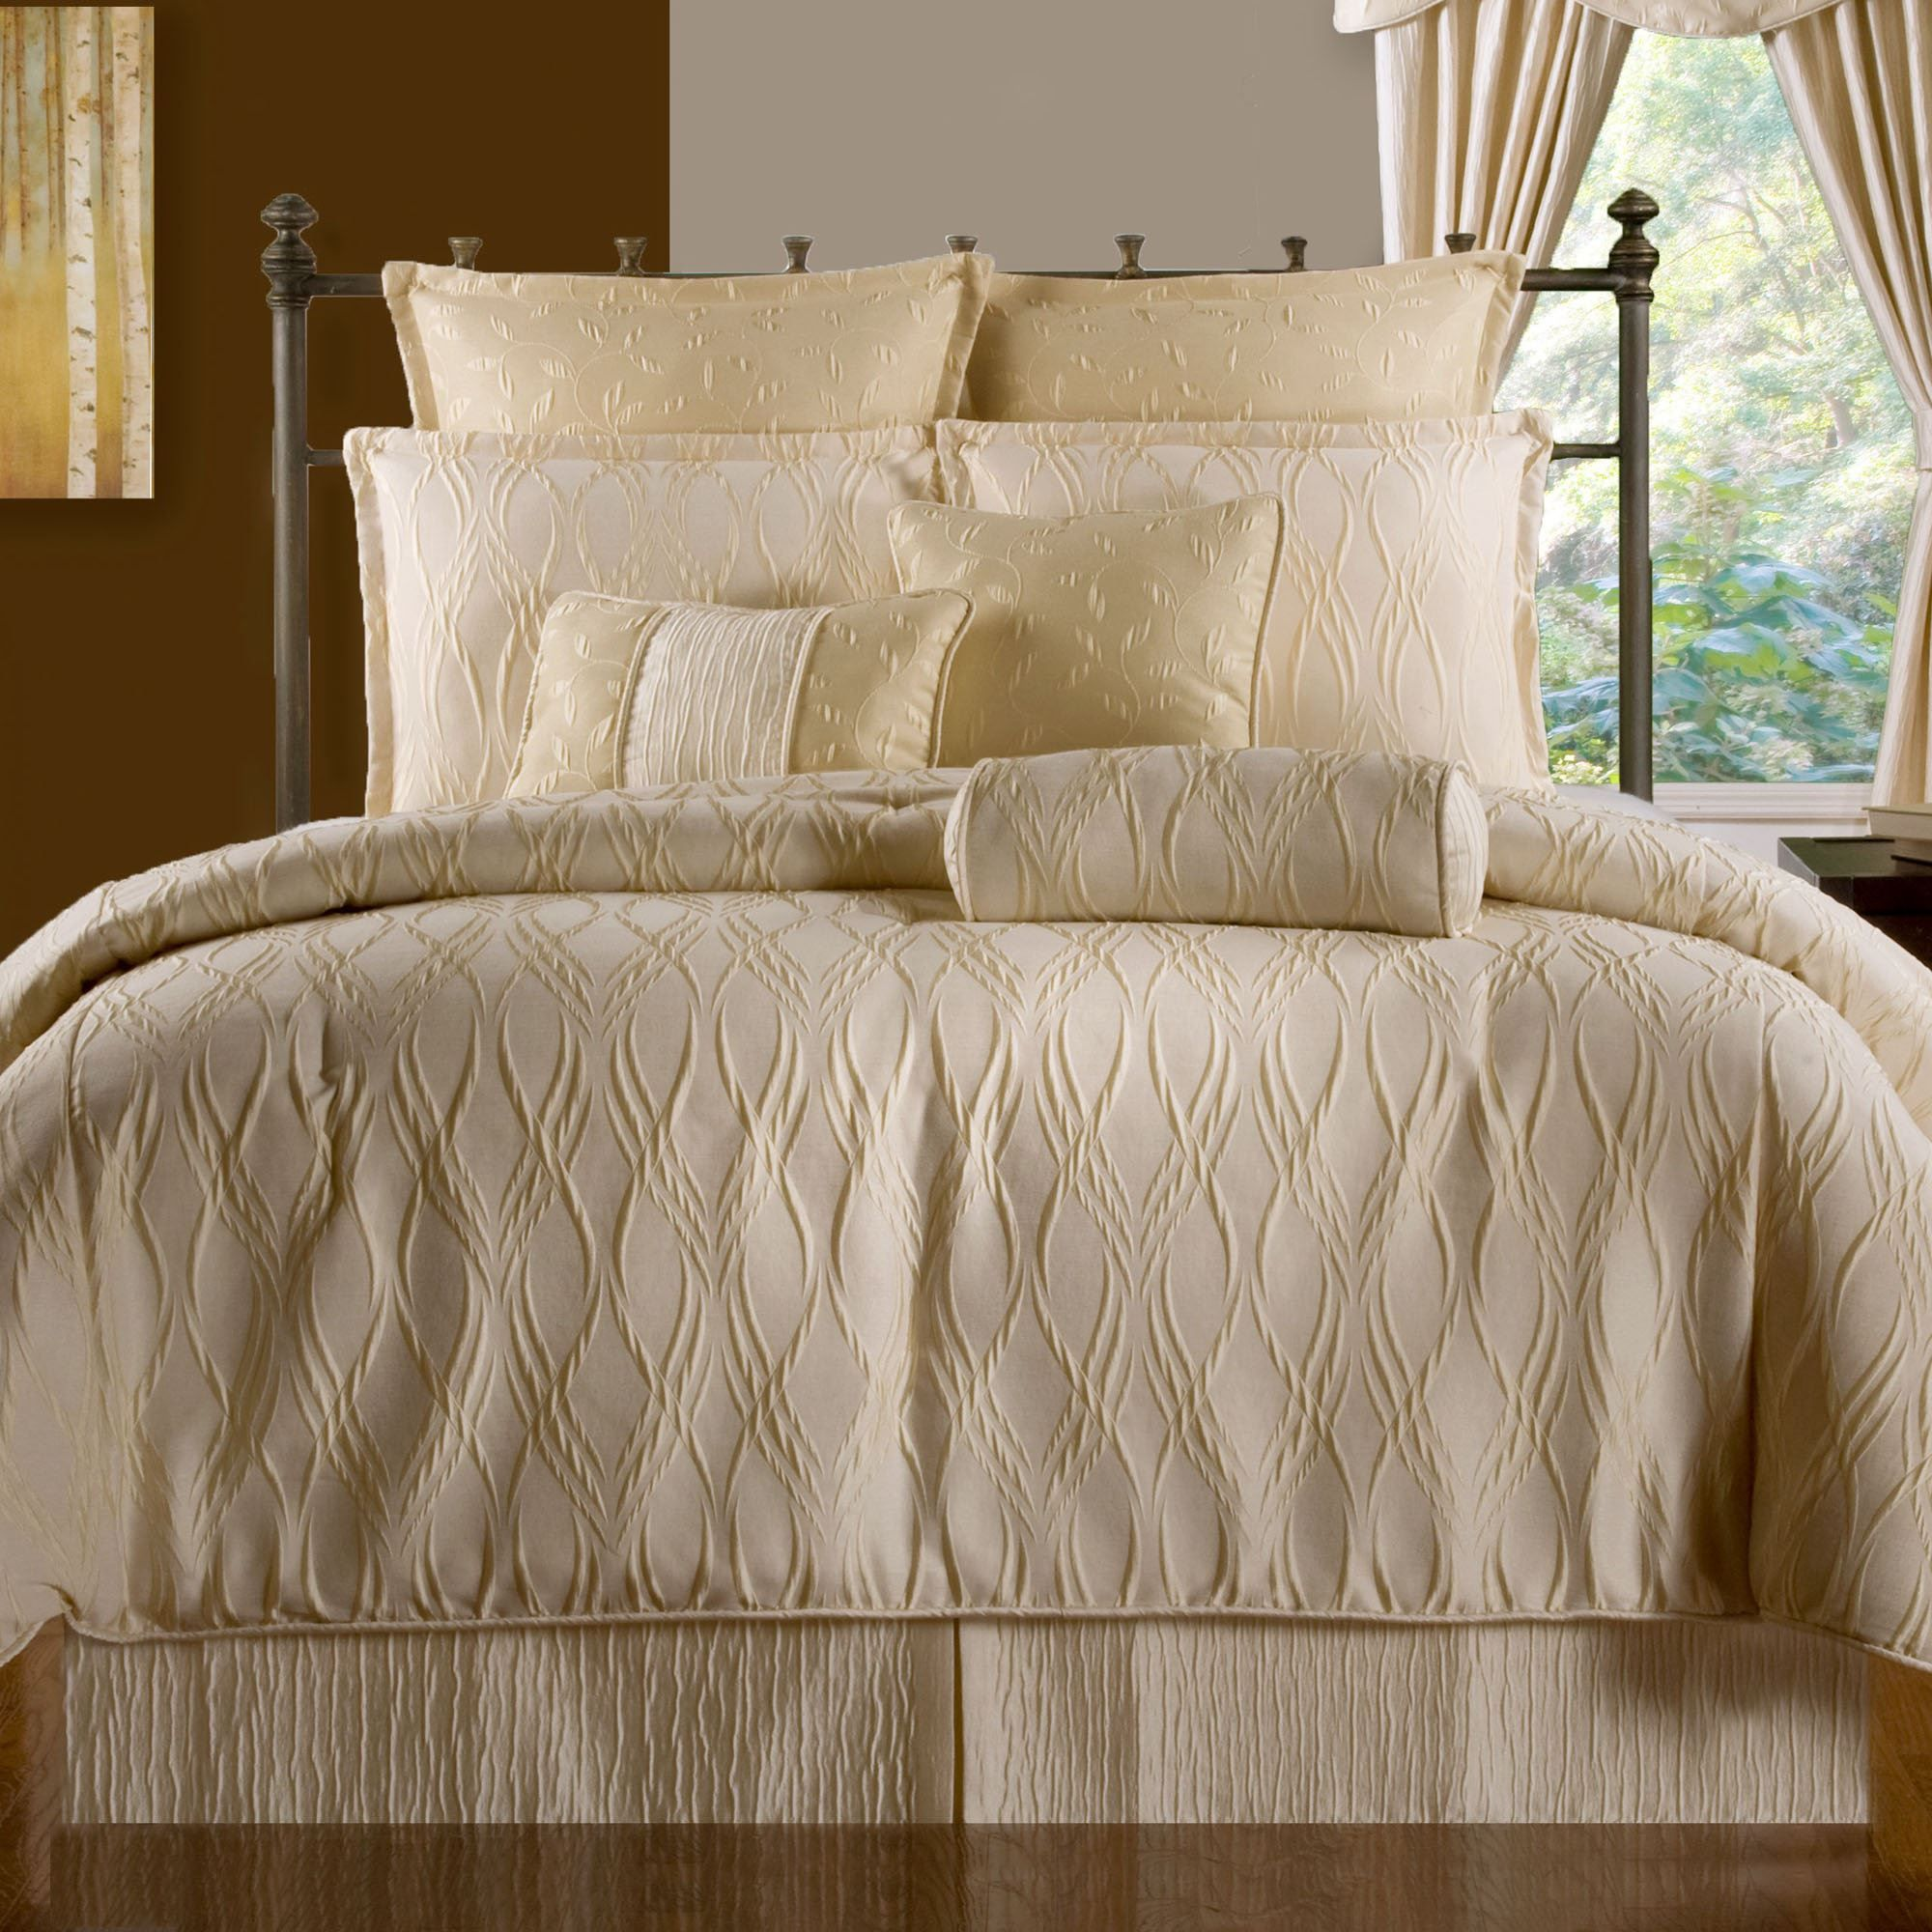 bedding ip in bag comforter a bed walmart tiles com set king mainstays